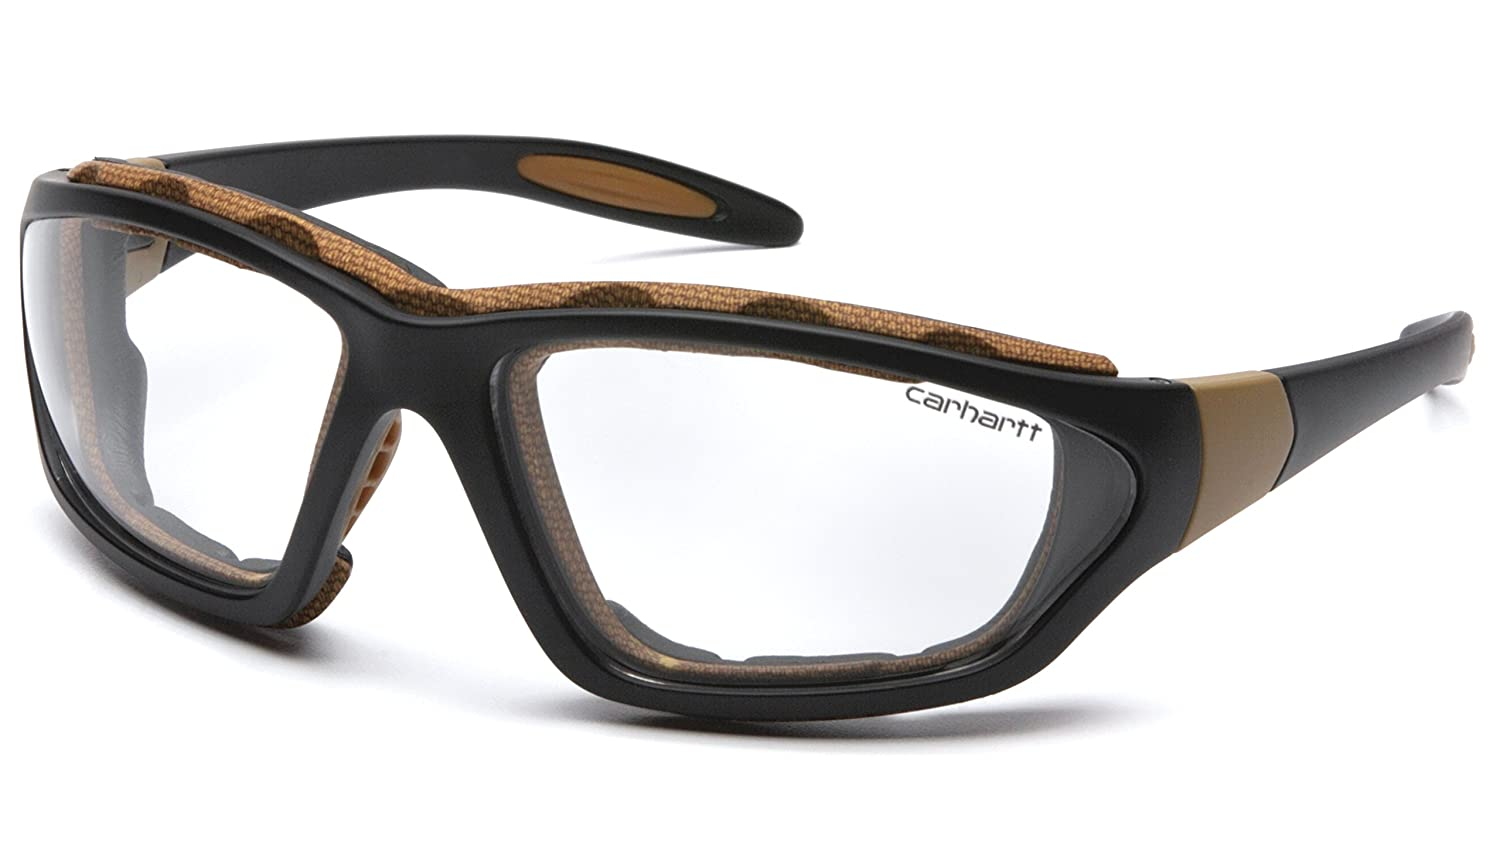 aa9b0d880e Amazon.com  Carhartt Carthage Safety Eyewear with Vented Foam Carriage